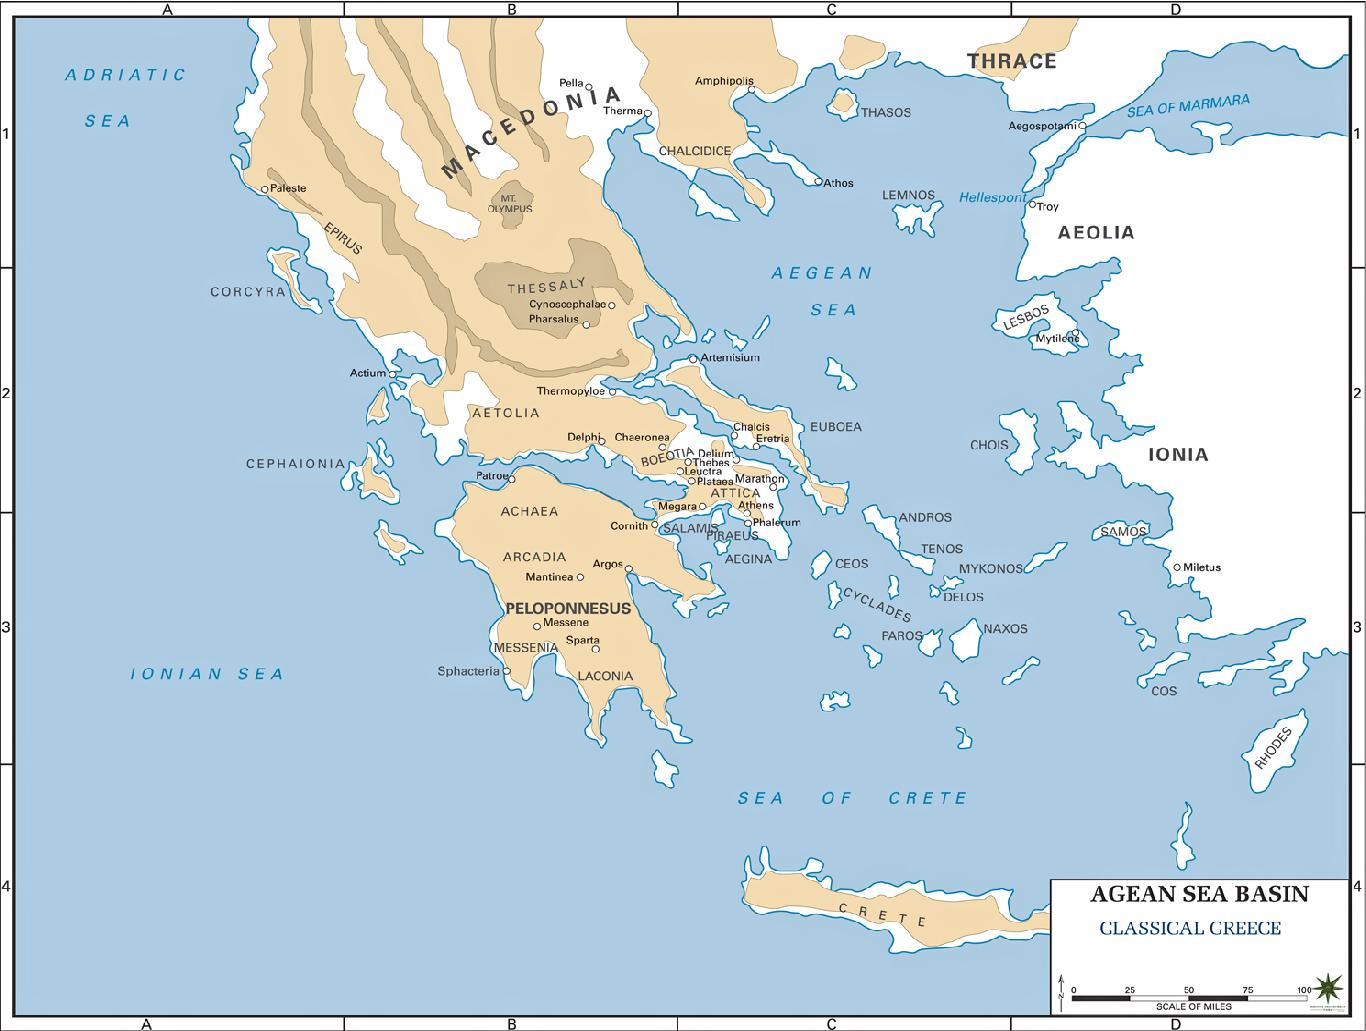 the geography of the ancient greece One major reason why ancient greece was dominated by small city-states and independent towns, rather than by one all-powerful king, is its geography the country's mountainous terrain, many isolated valleys, and numerous offshore islands encouraged the formation of many local centers of power, rather than one.